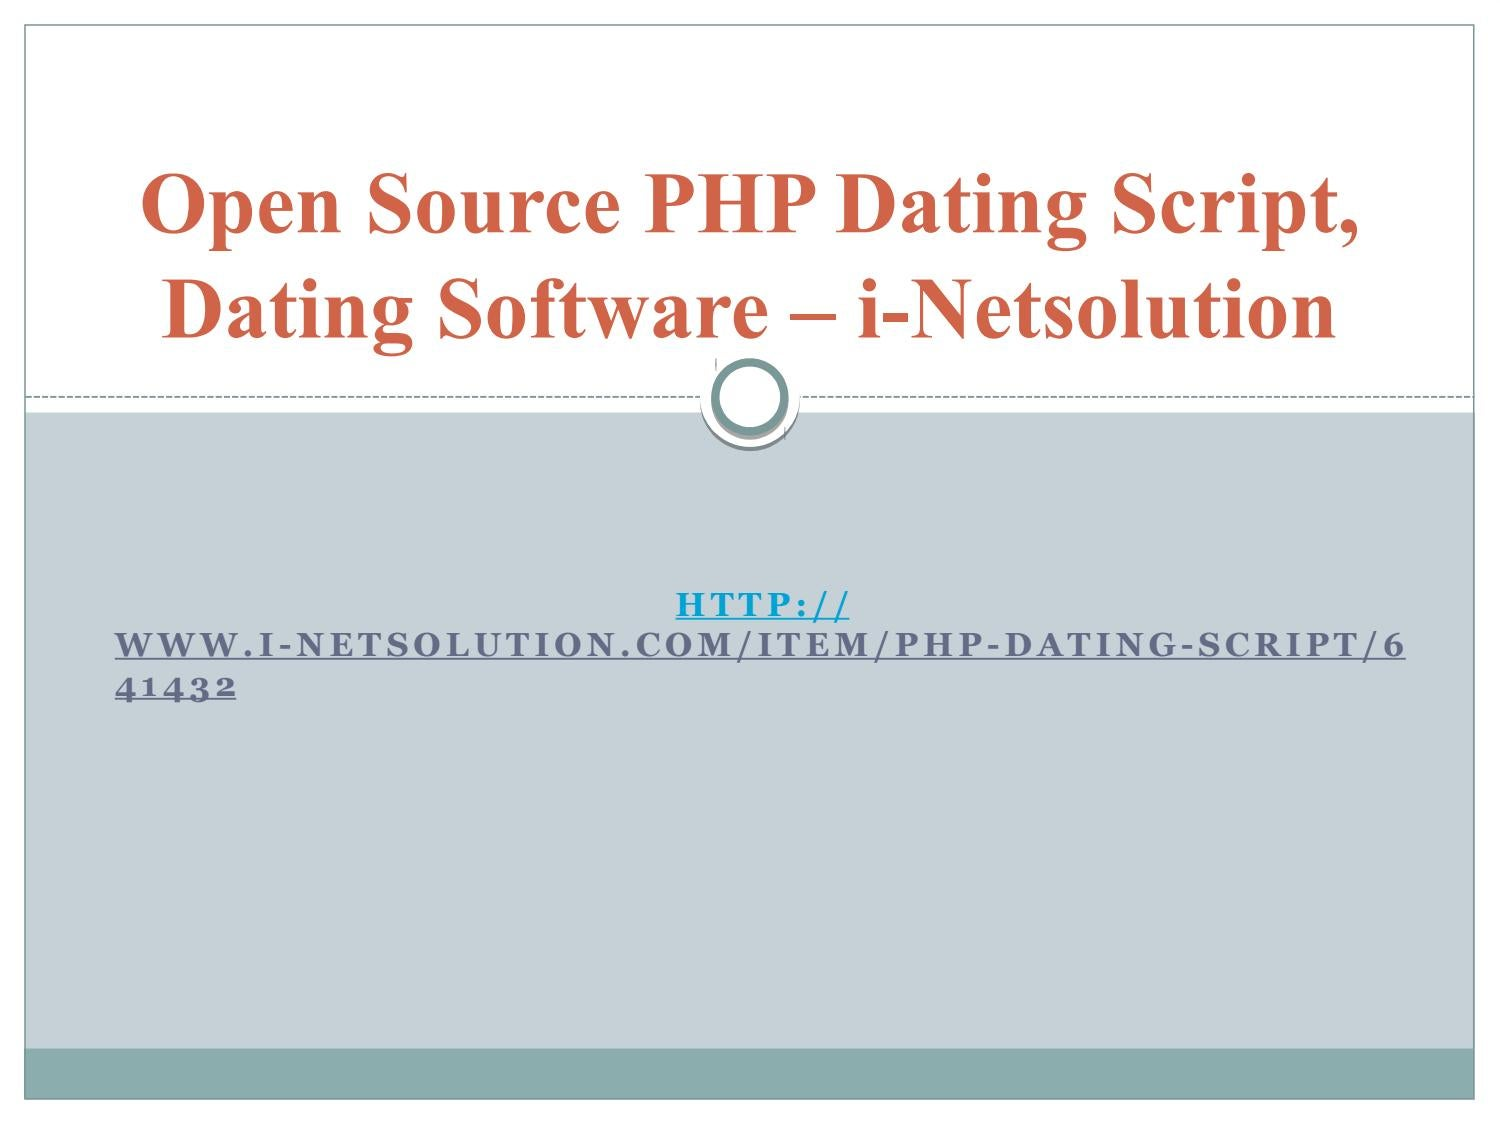 Dating-Software Open Source php